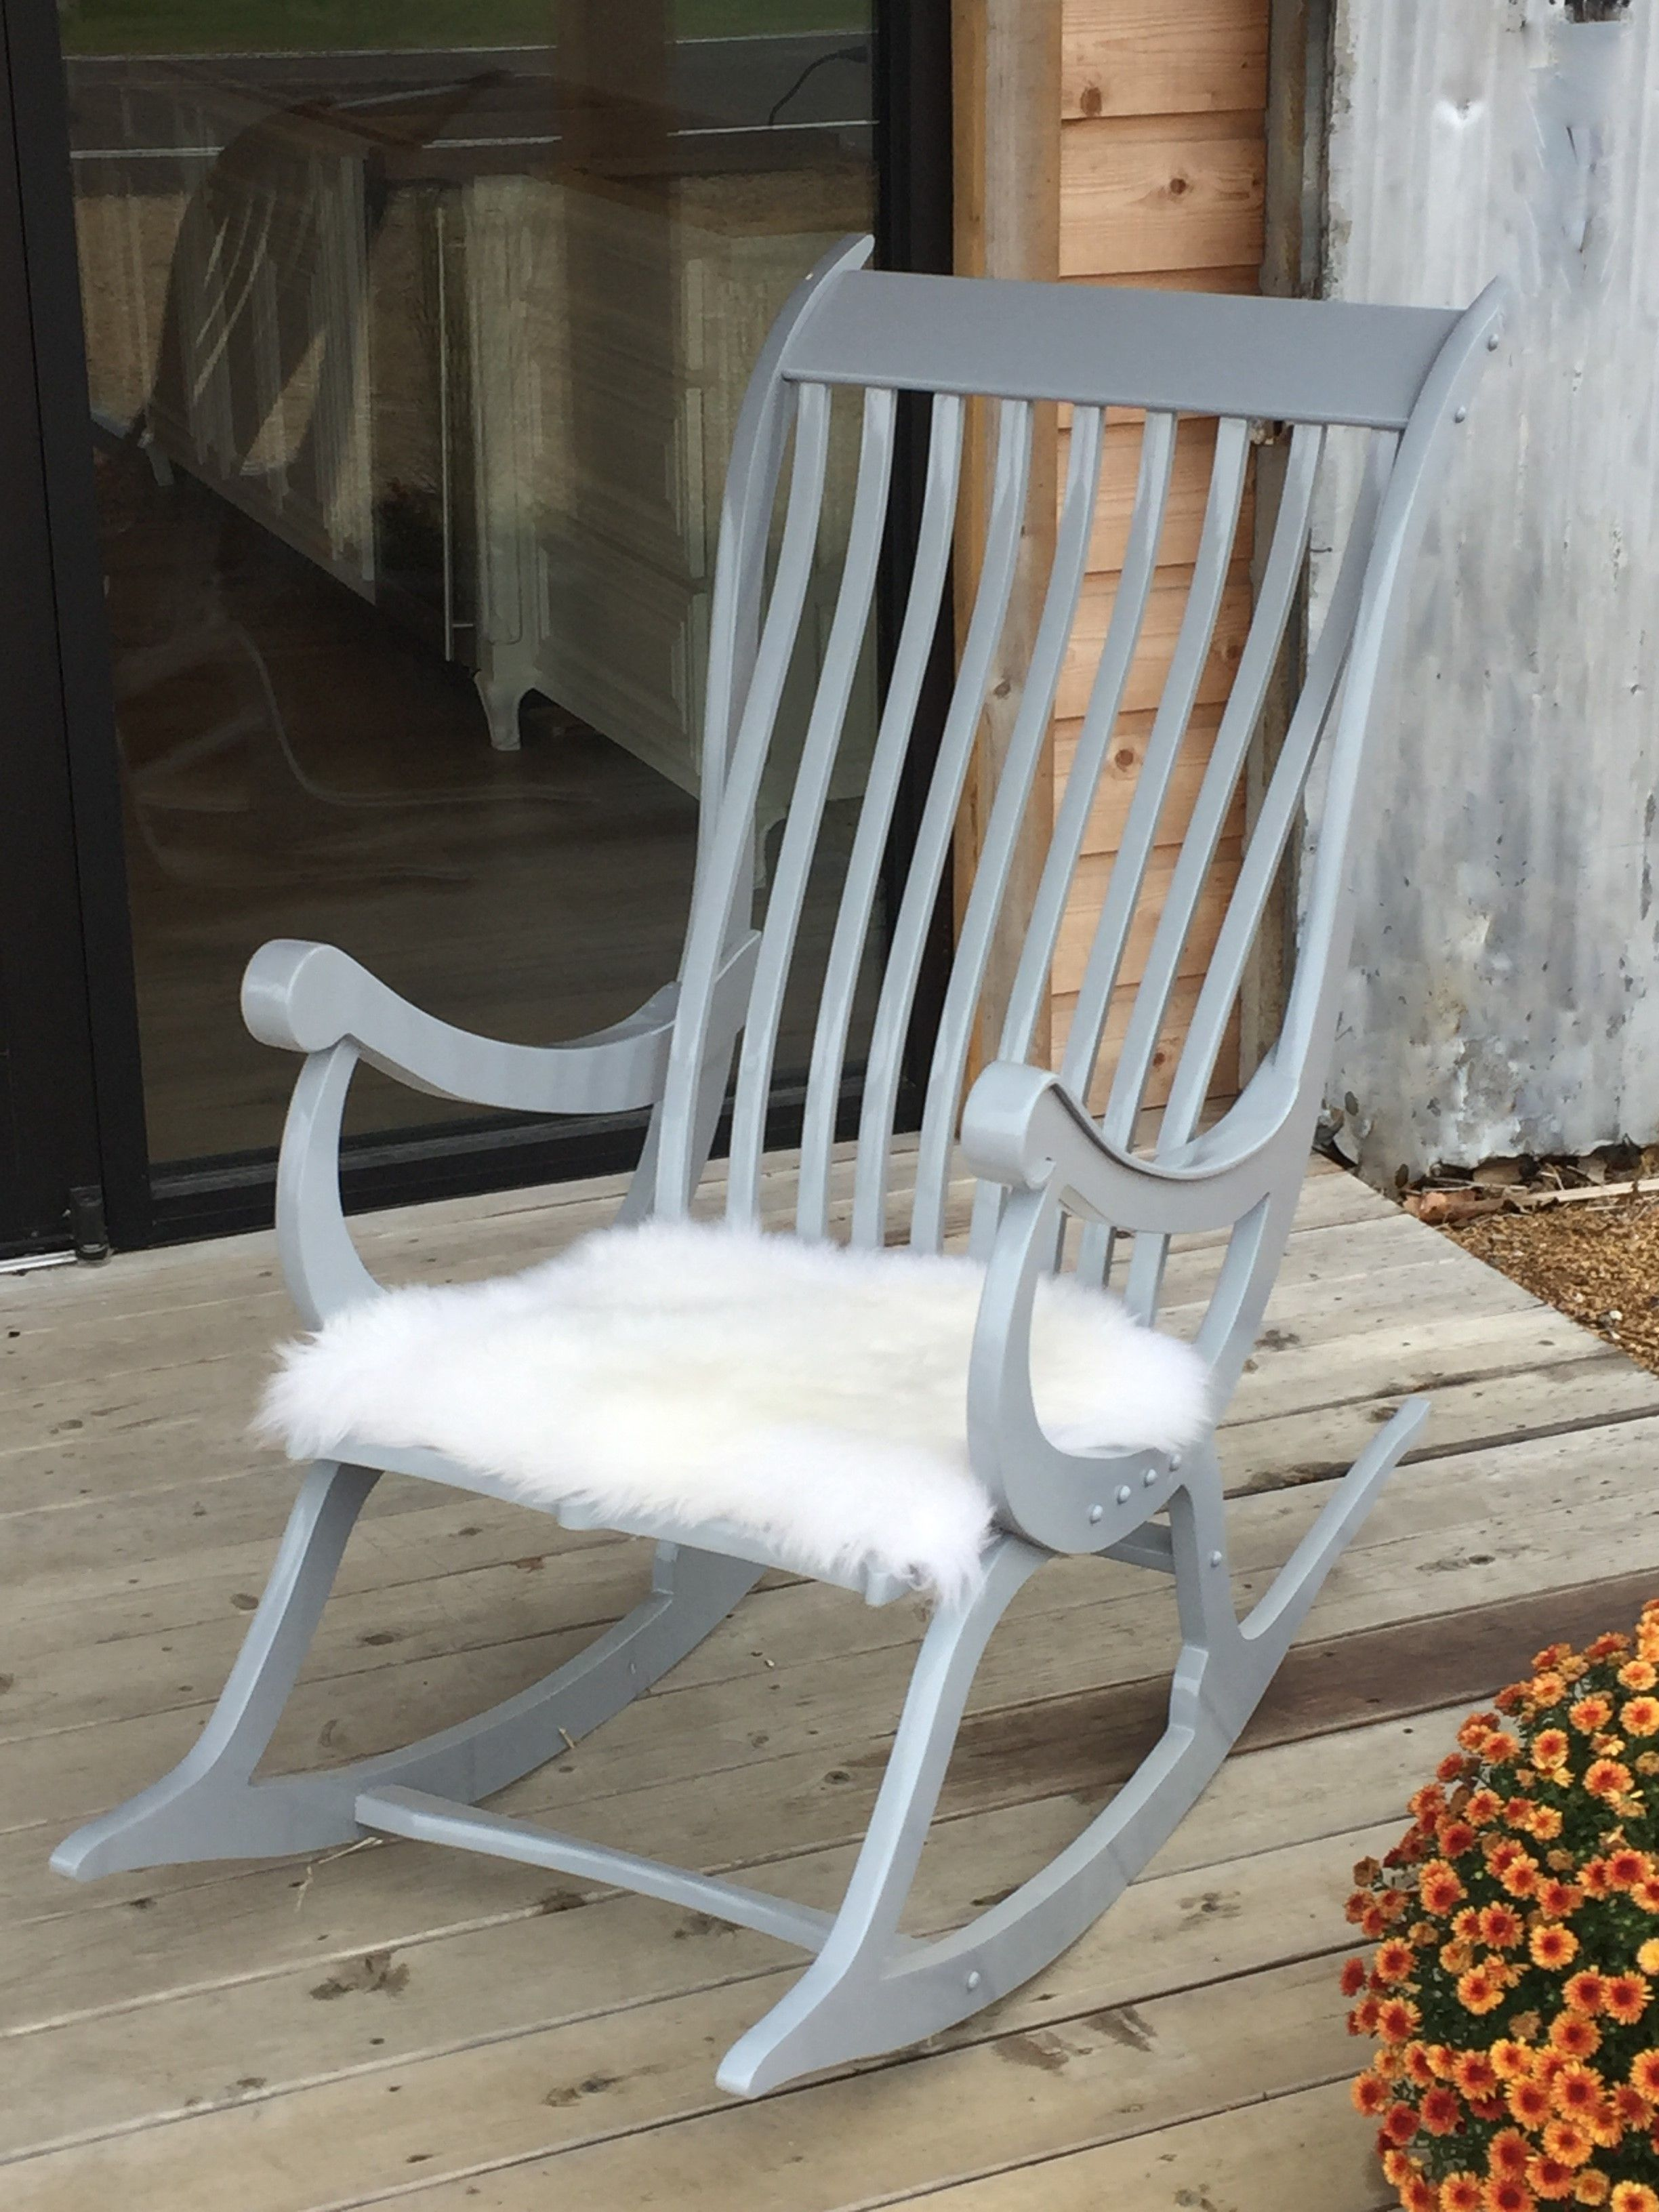 Painted Gray with custom sheepskin seat cover in white